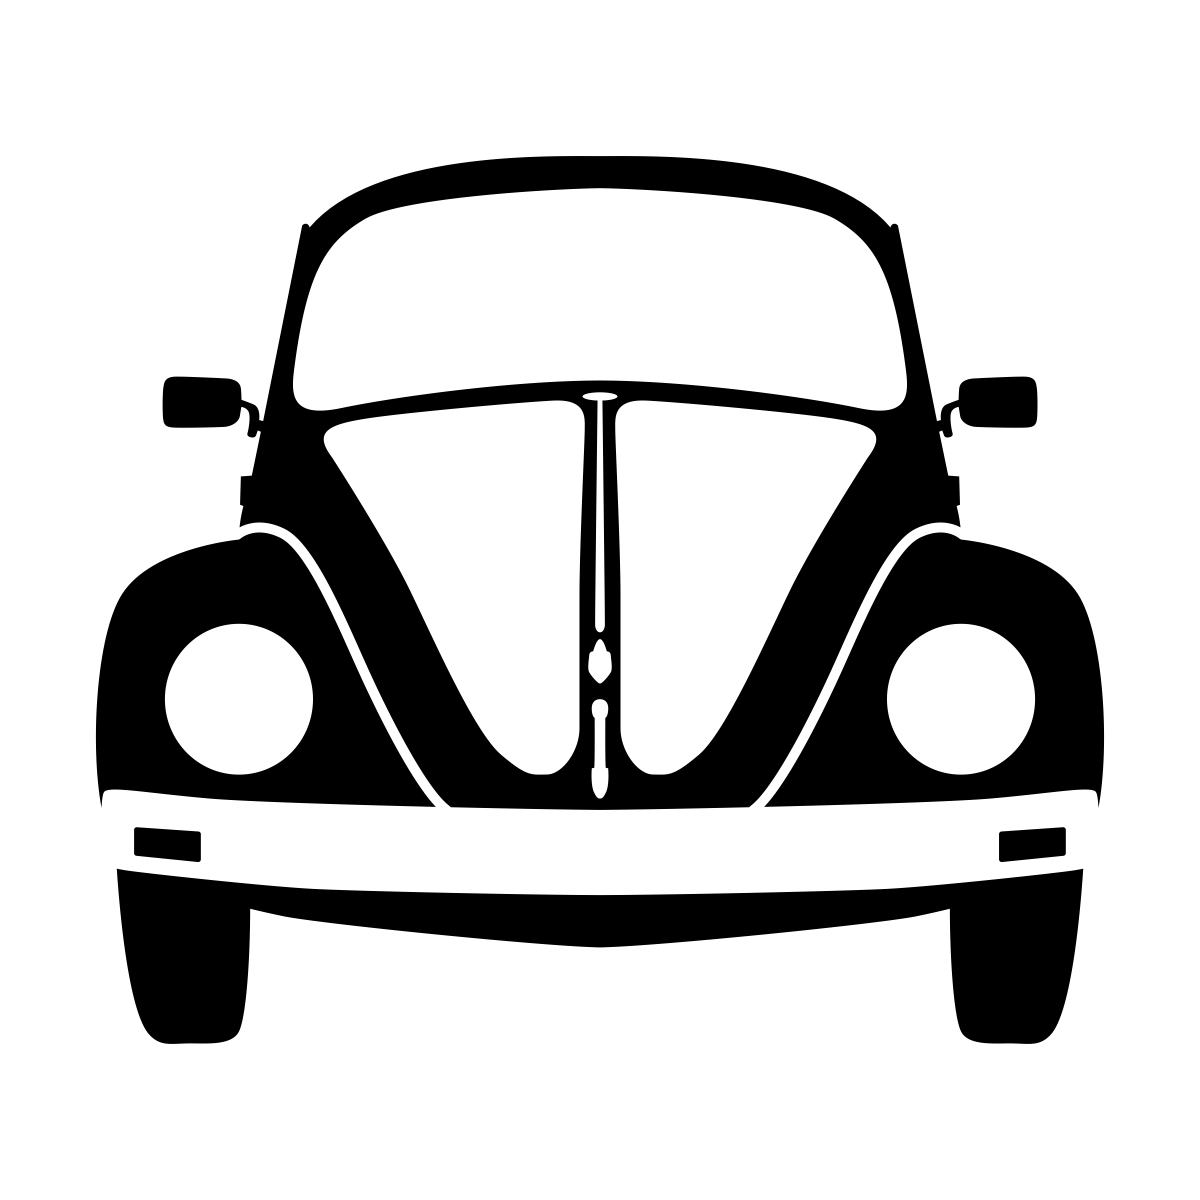 Vw Bug Clipart 3 Clipart Station